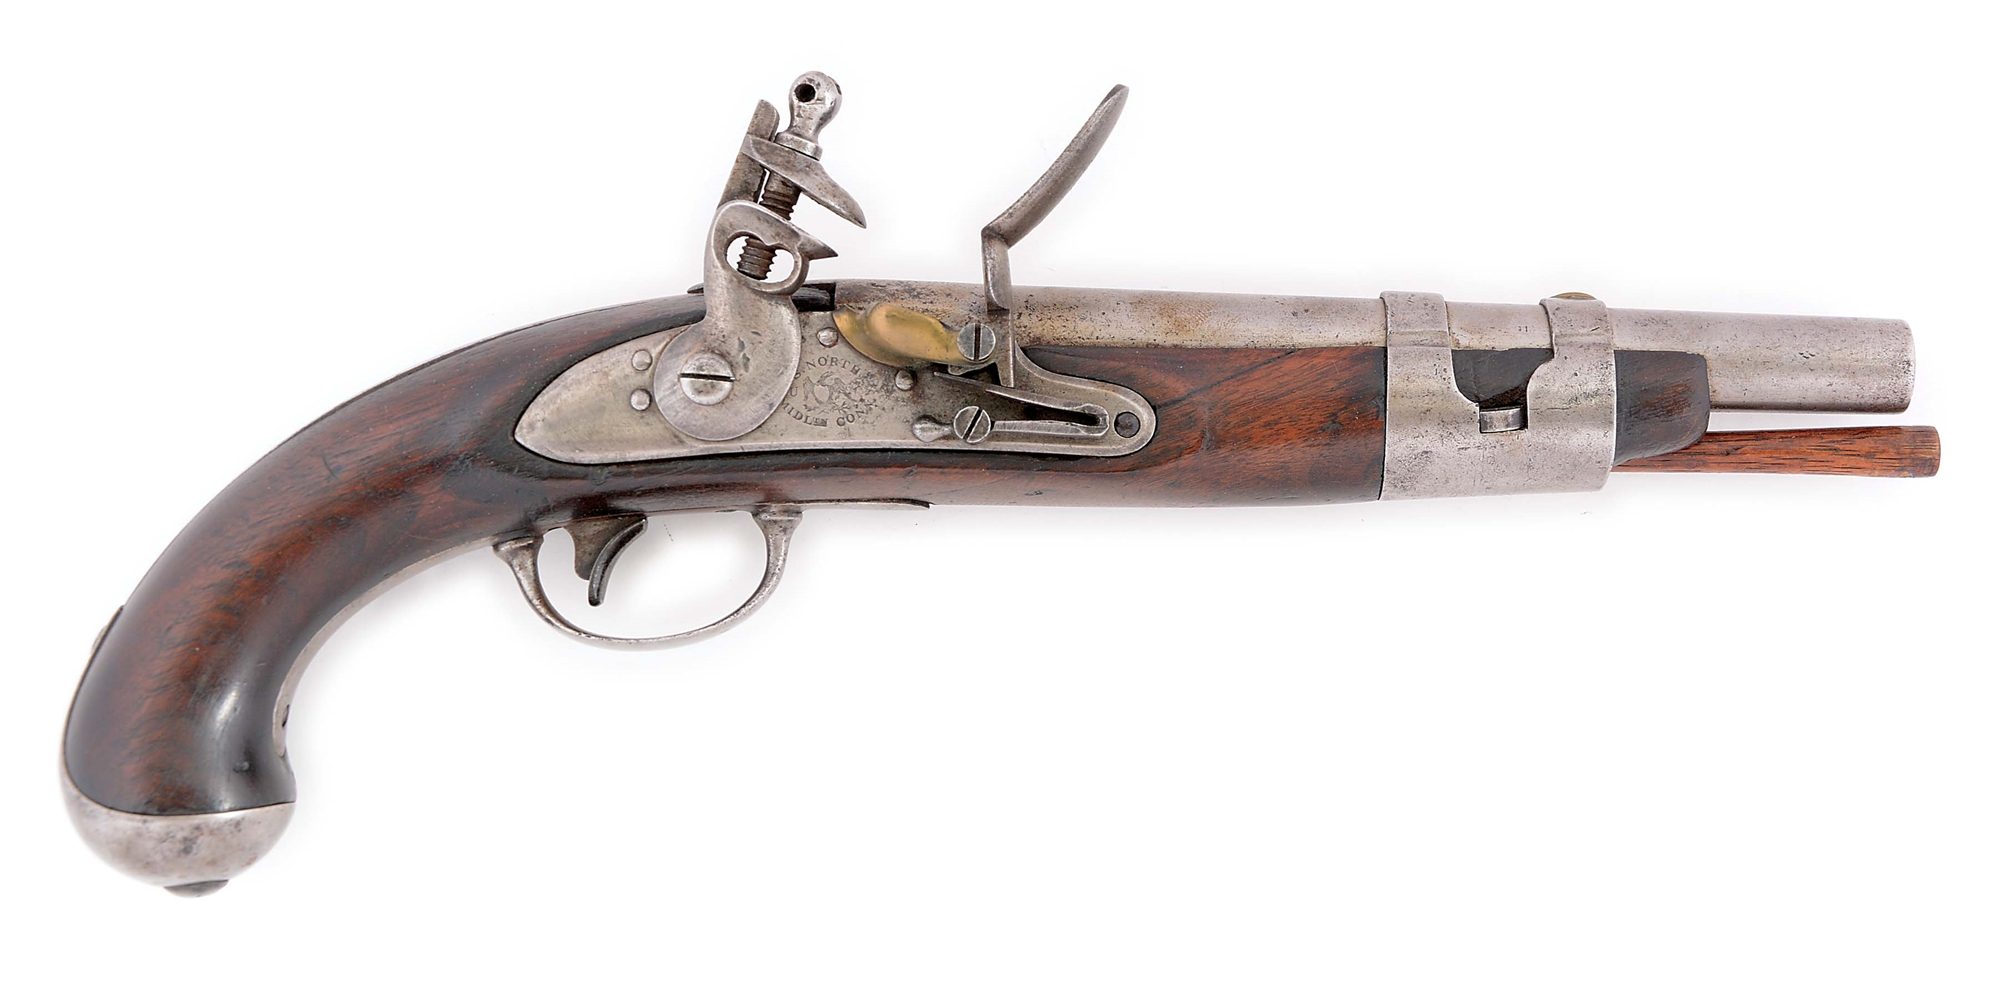 (A) A RARE AND DESIRABLE SOUTH CAROLINA MARKED US MODEL 1816 SINGLE SHOT MARTIAL PISTOL BY S. NORTH.